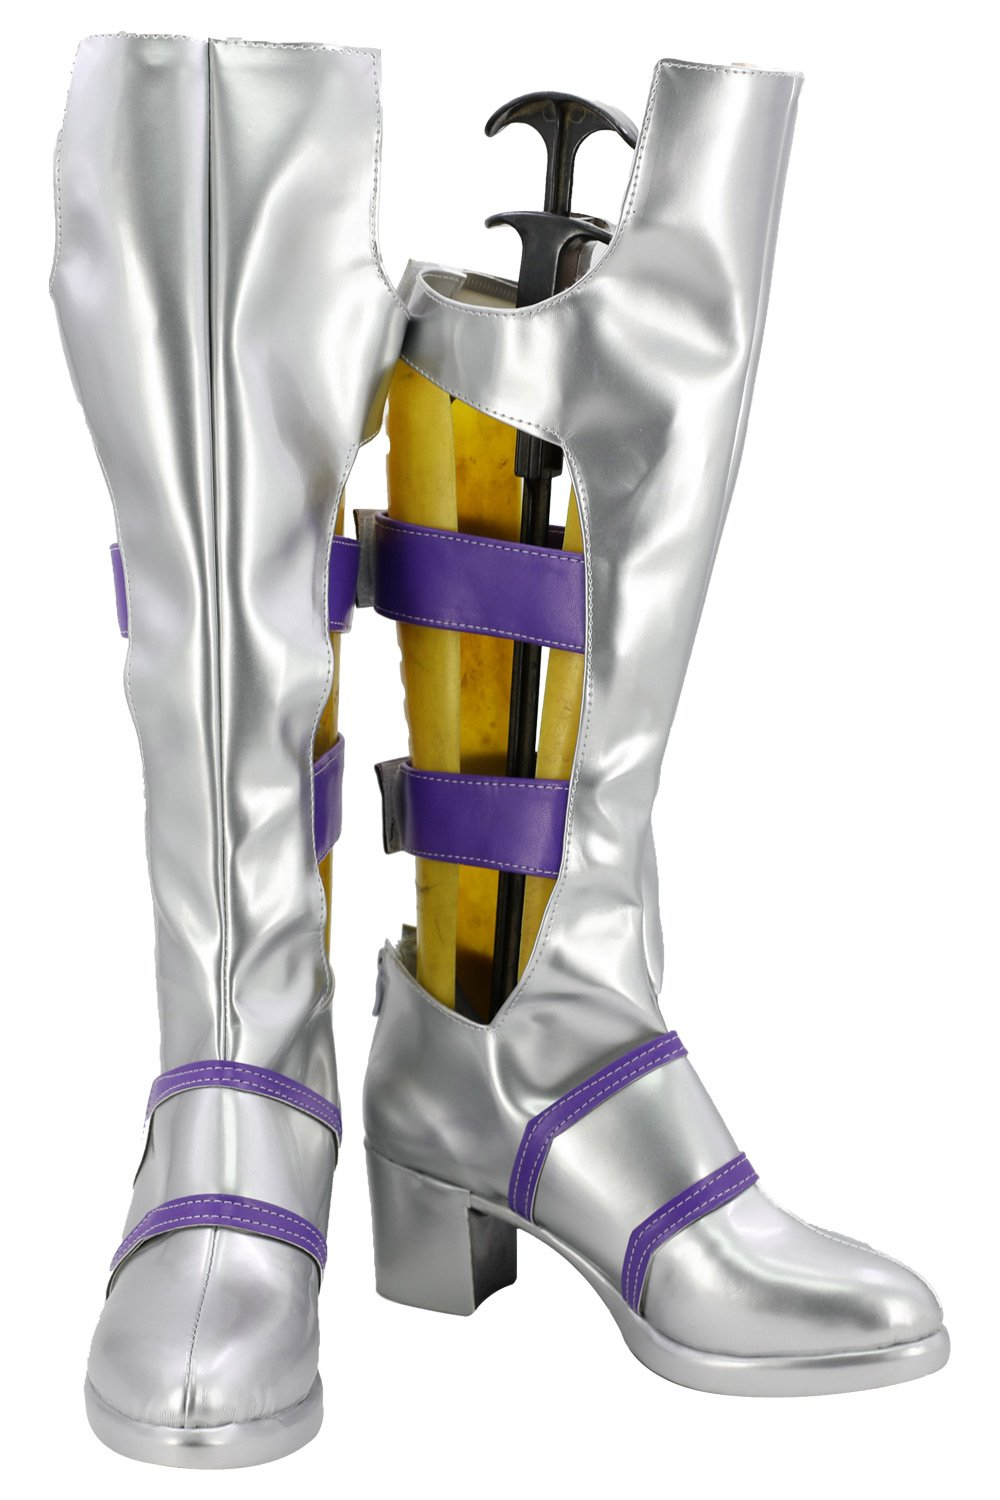 Transformers:Prime Megatron Boots Cosplay Shoes